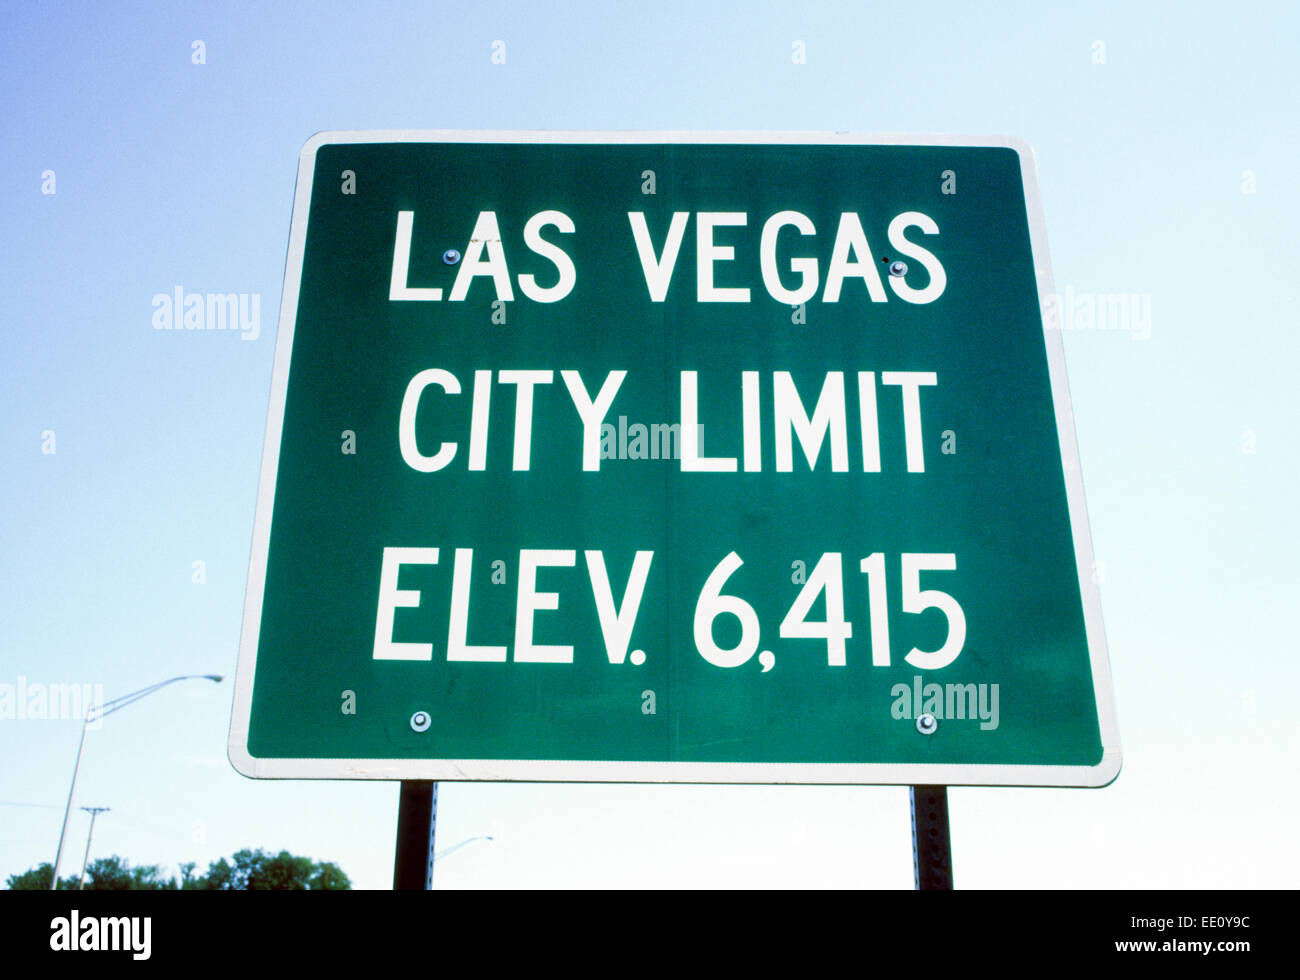 las vegas nv march 01 las vegas new mexico elevation 6415 sign stock photo alamy https www alamy com stock photo las vegas nv march 01 las vegas new mexico elevation 6415 sign in 77468088 html